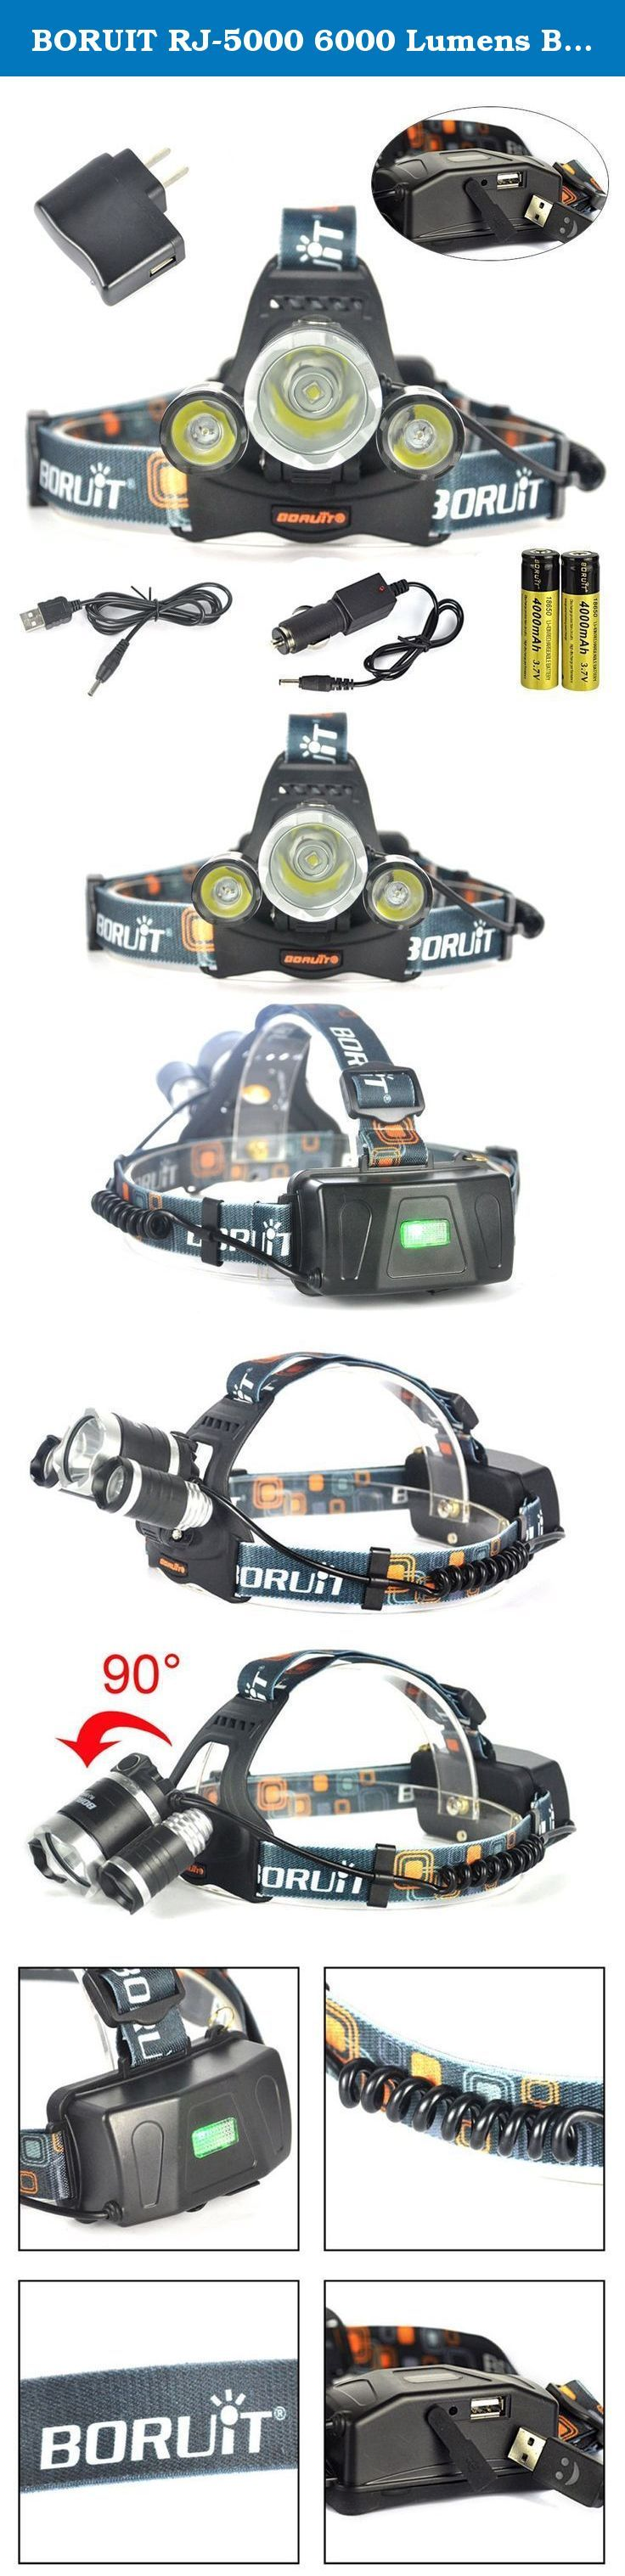 BORUIT RJ-5000 6000 Lumens Bright Headlight Headlamp Flashlight Torch CREE XM-L2 3 T6 3T6 LED with Rechargeable Batteries & Wall Charger for Hiking Camping Riding Fishing Running Hunting. Our genuine BORUIT RJ5000 headlamp has 3 XML-L2 LED super bright lights which are suitable for many different needs. In addition, the headlamp comes with an adjustable base which will enable you to change the light direction freely. It is suitable and highly recommended for many outdoor activities...